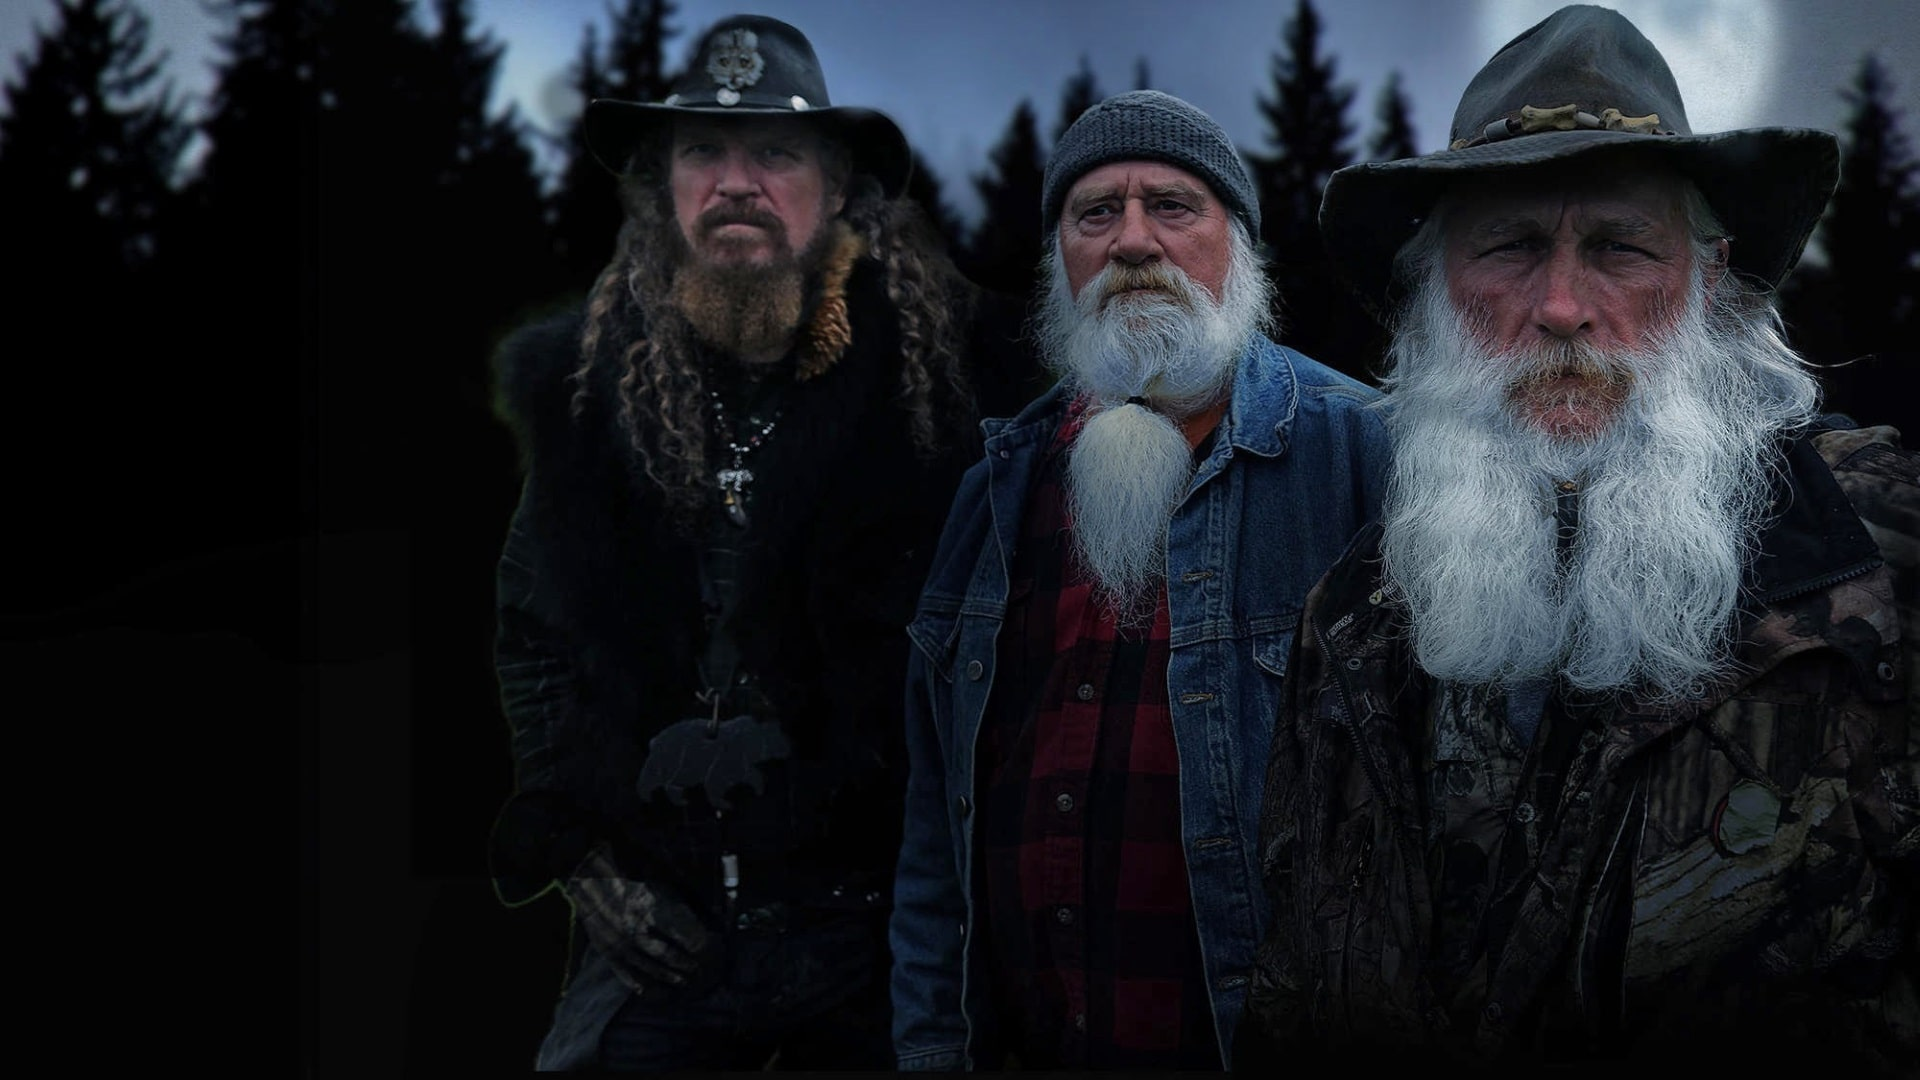 Mountain Monsters - Season 6 Watch Online on CouchTuner